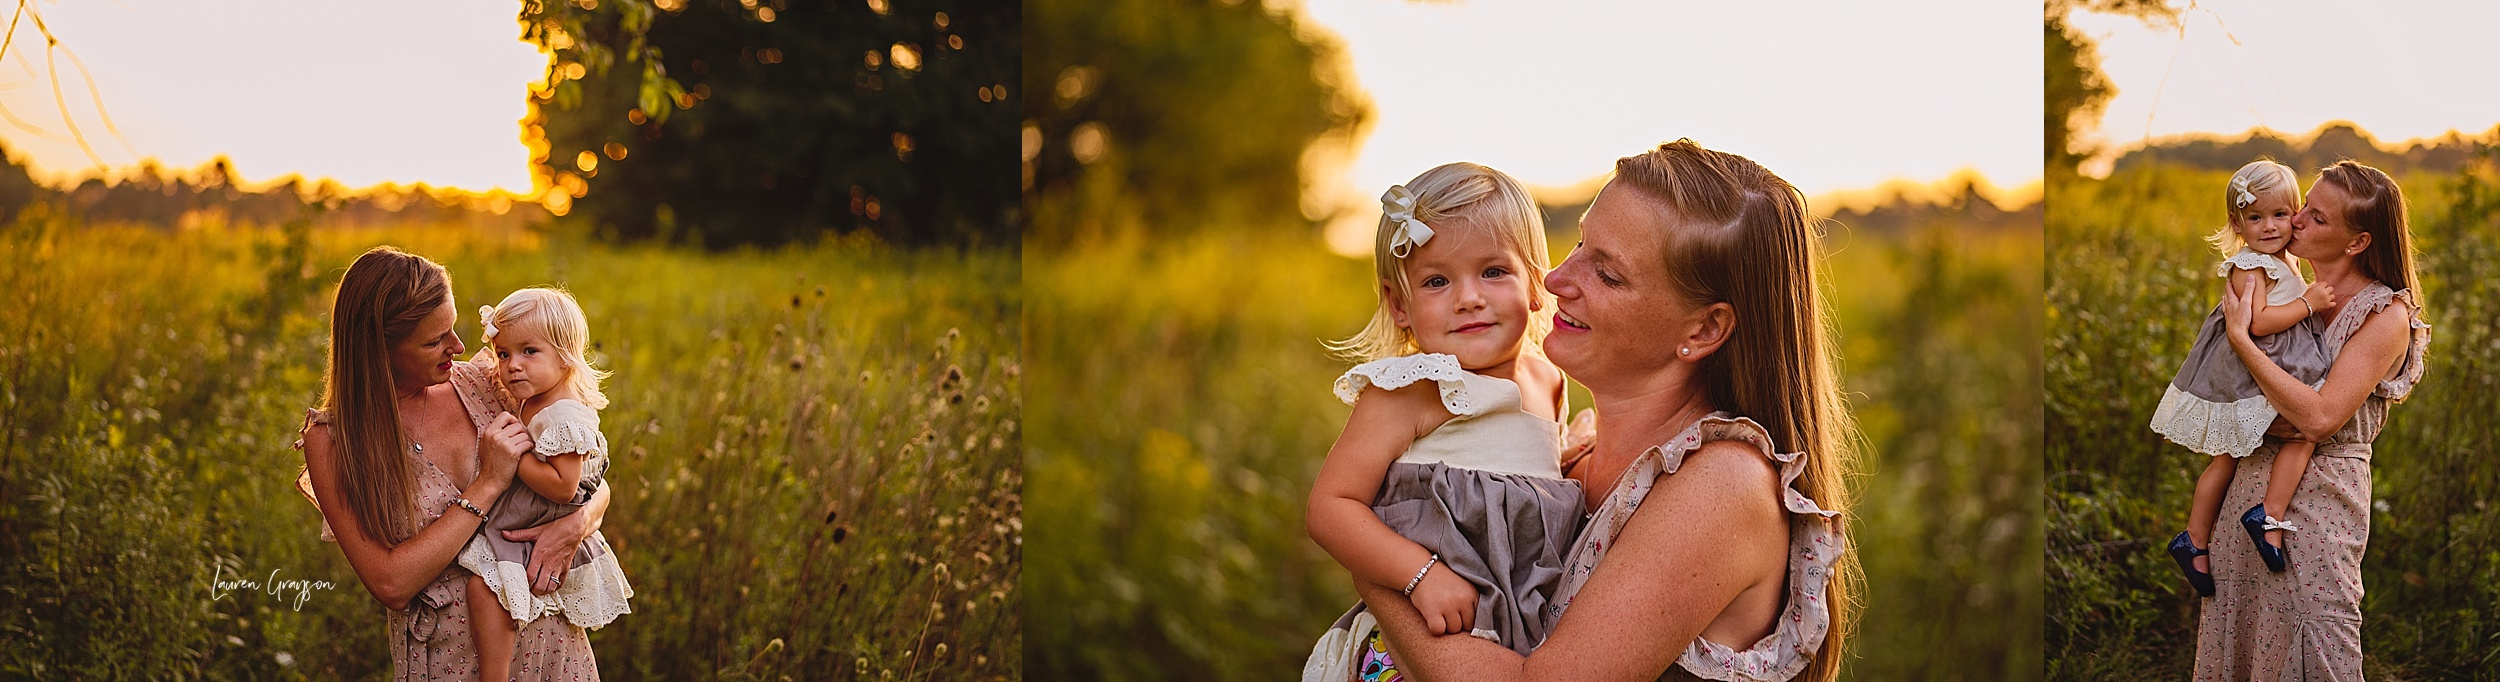 lauren-grayson-photography-cleveland-ohio-photographer-AKRON-family-photos-springfield-bog-cullin-first-birthday_0865.jpg